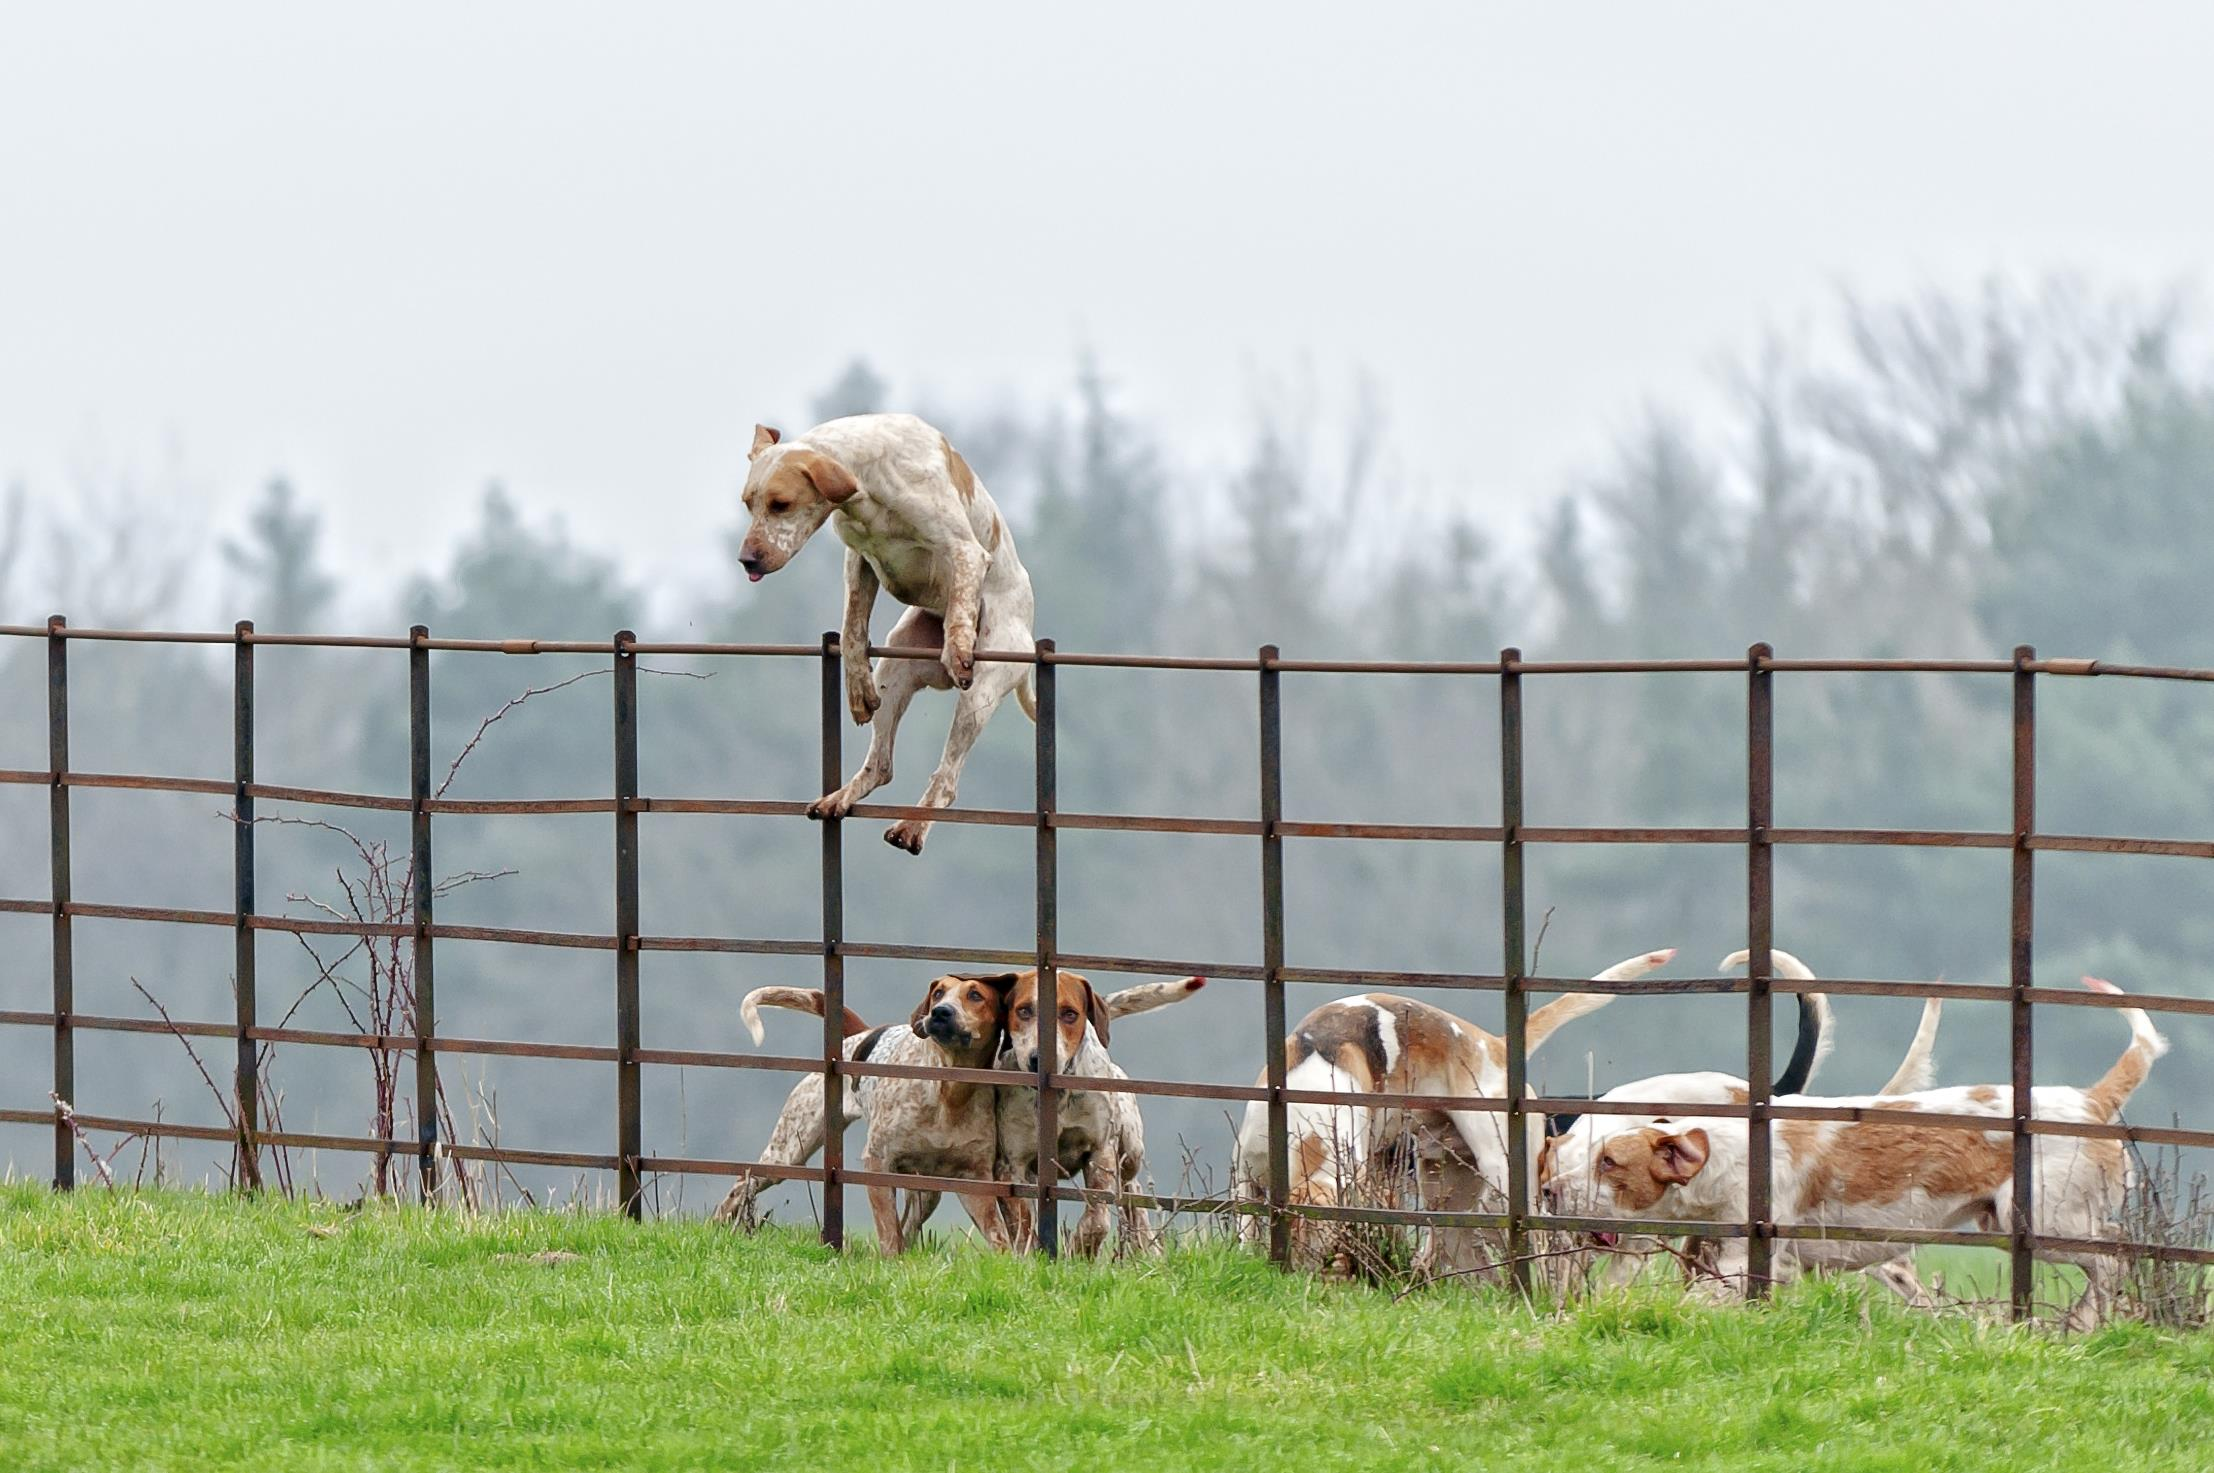 Dog leaping over fence ()